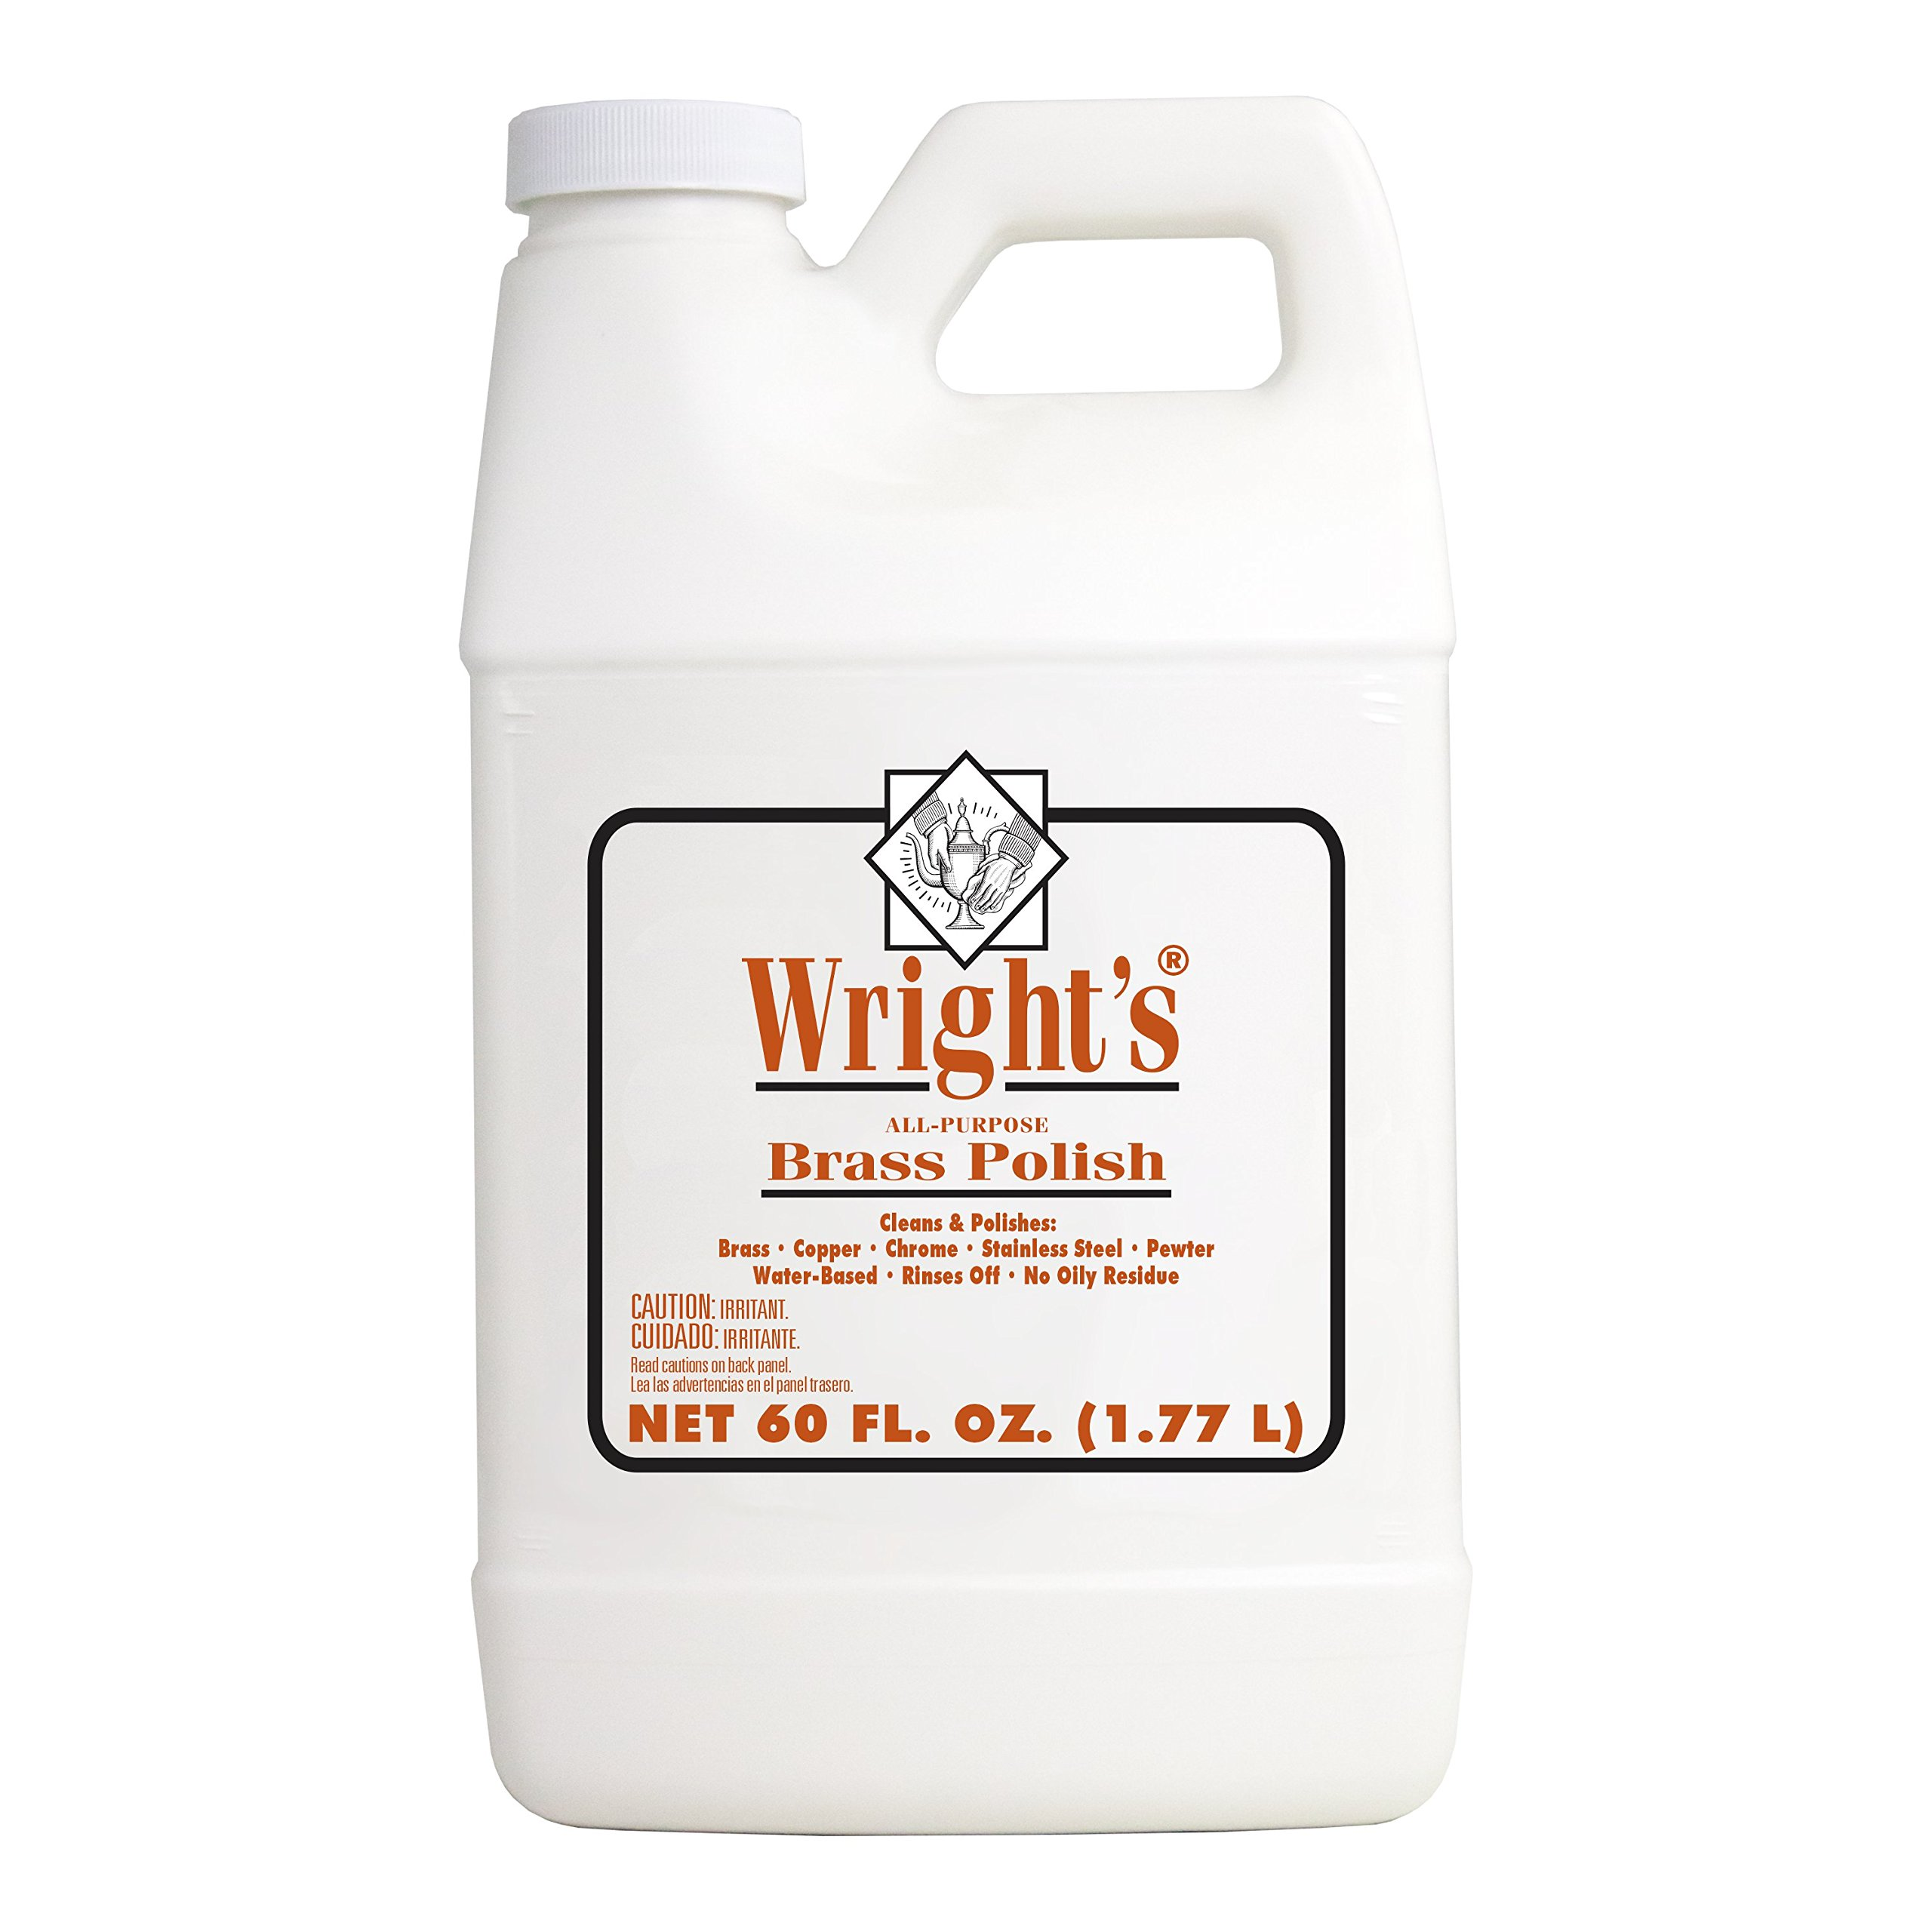 Wright's Brass Polish and Cleaner - 60 Ounce - Gently Clean and Remove Tarnish Without Scratching by Wright's (Image #1)